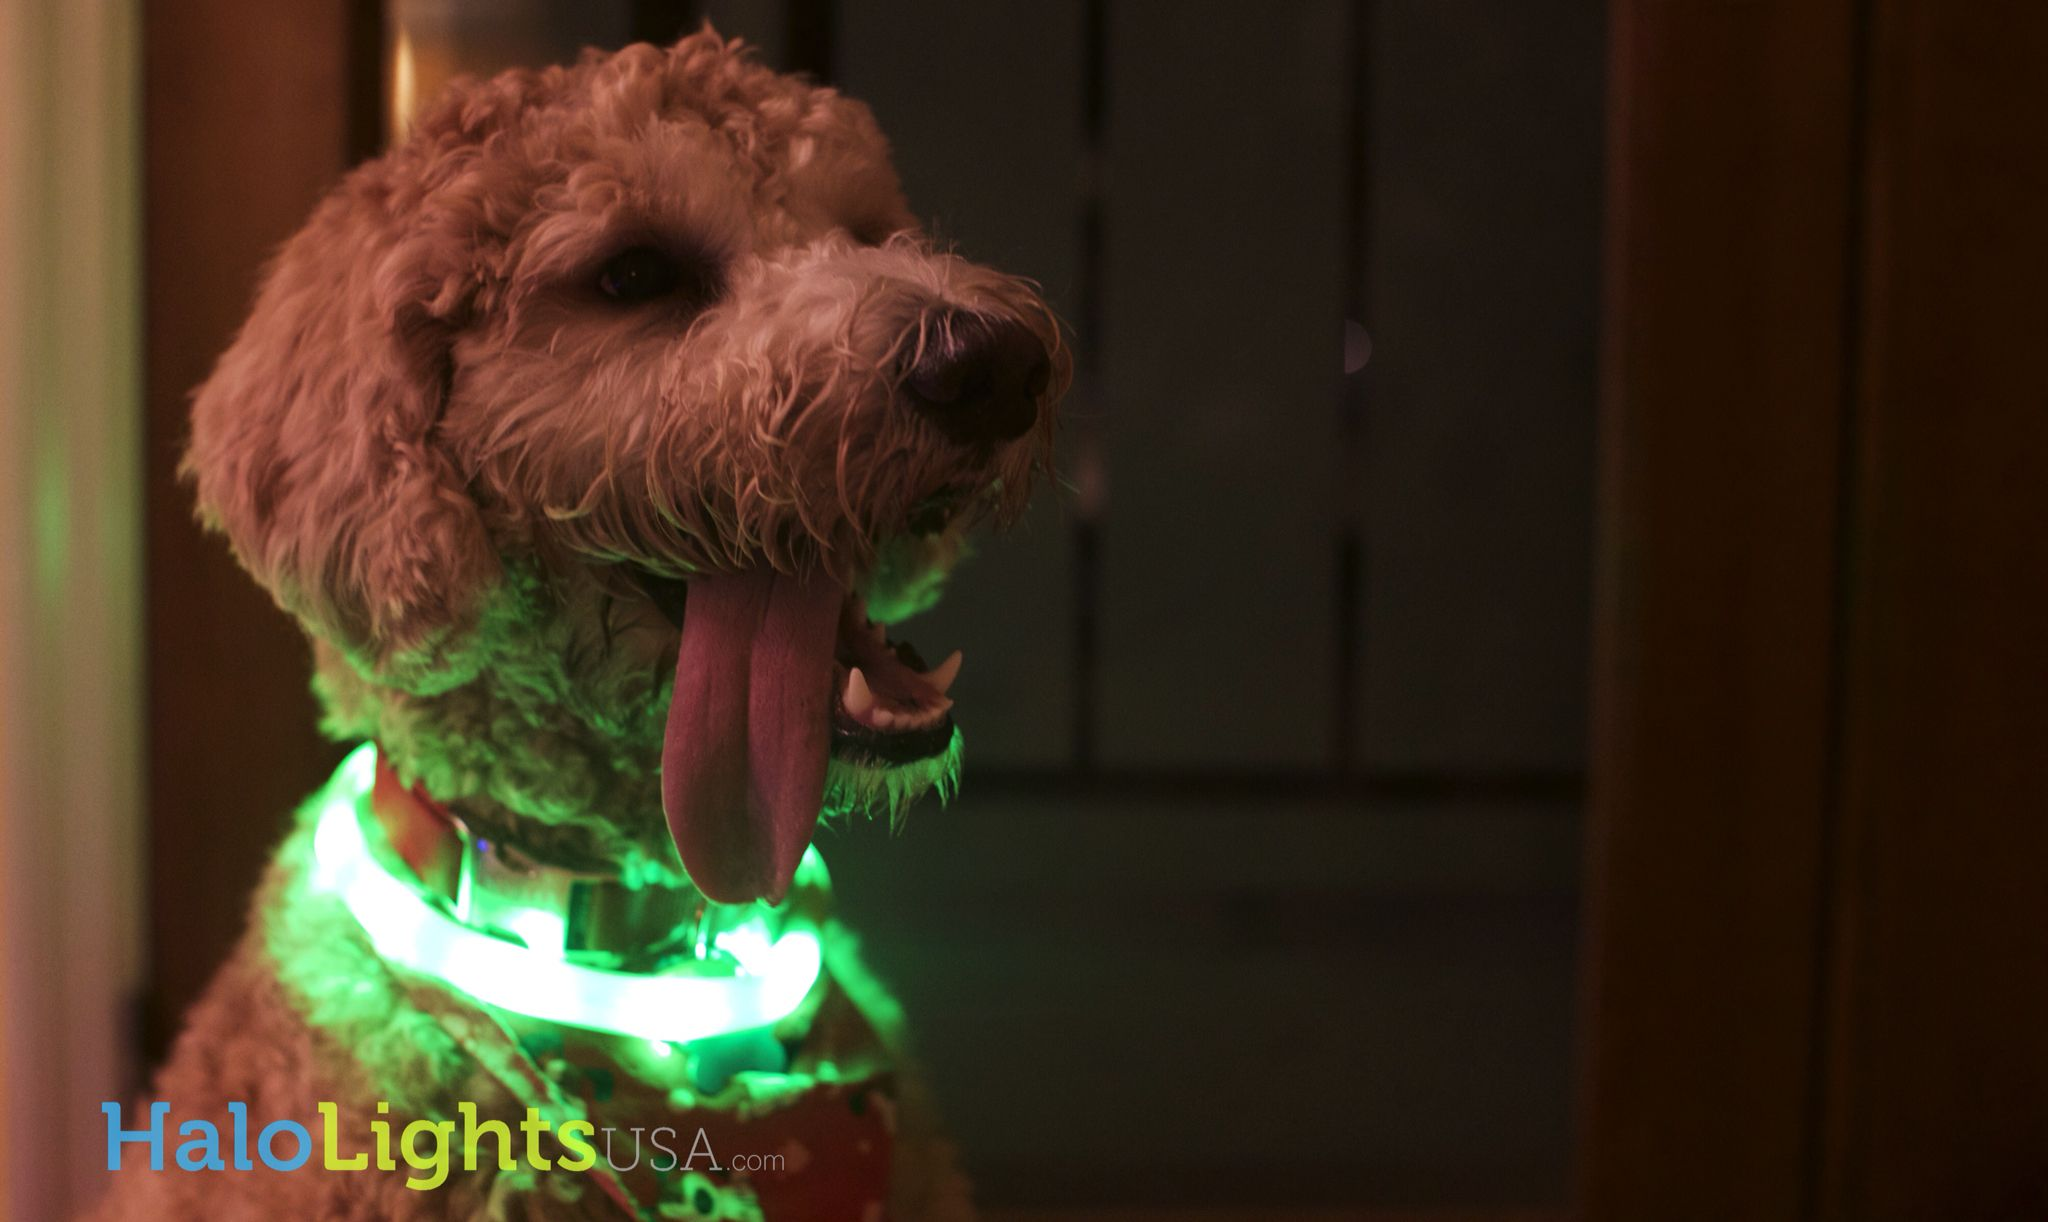 USB rechargeable LED collars! Enchanting safety and